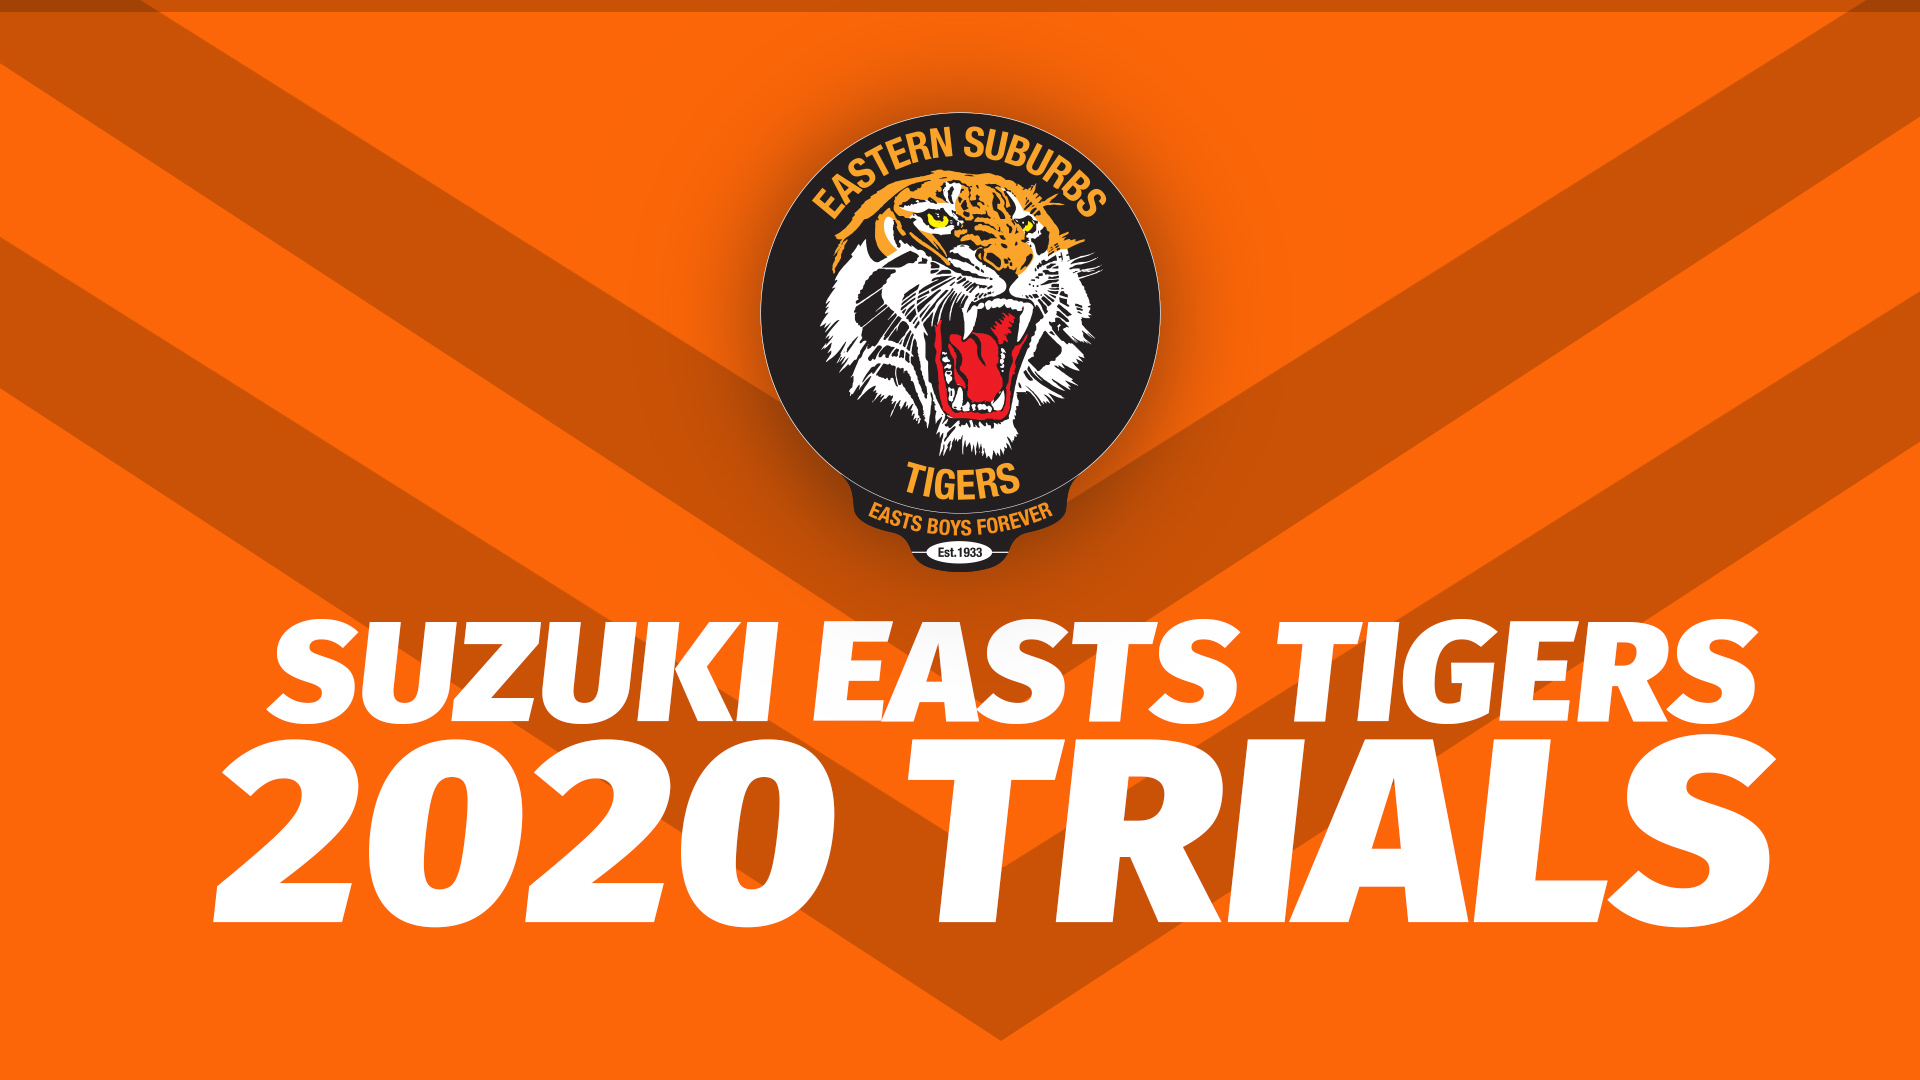 Suzuki Easts Tigers 2020 Trials cover